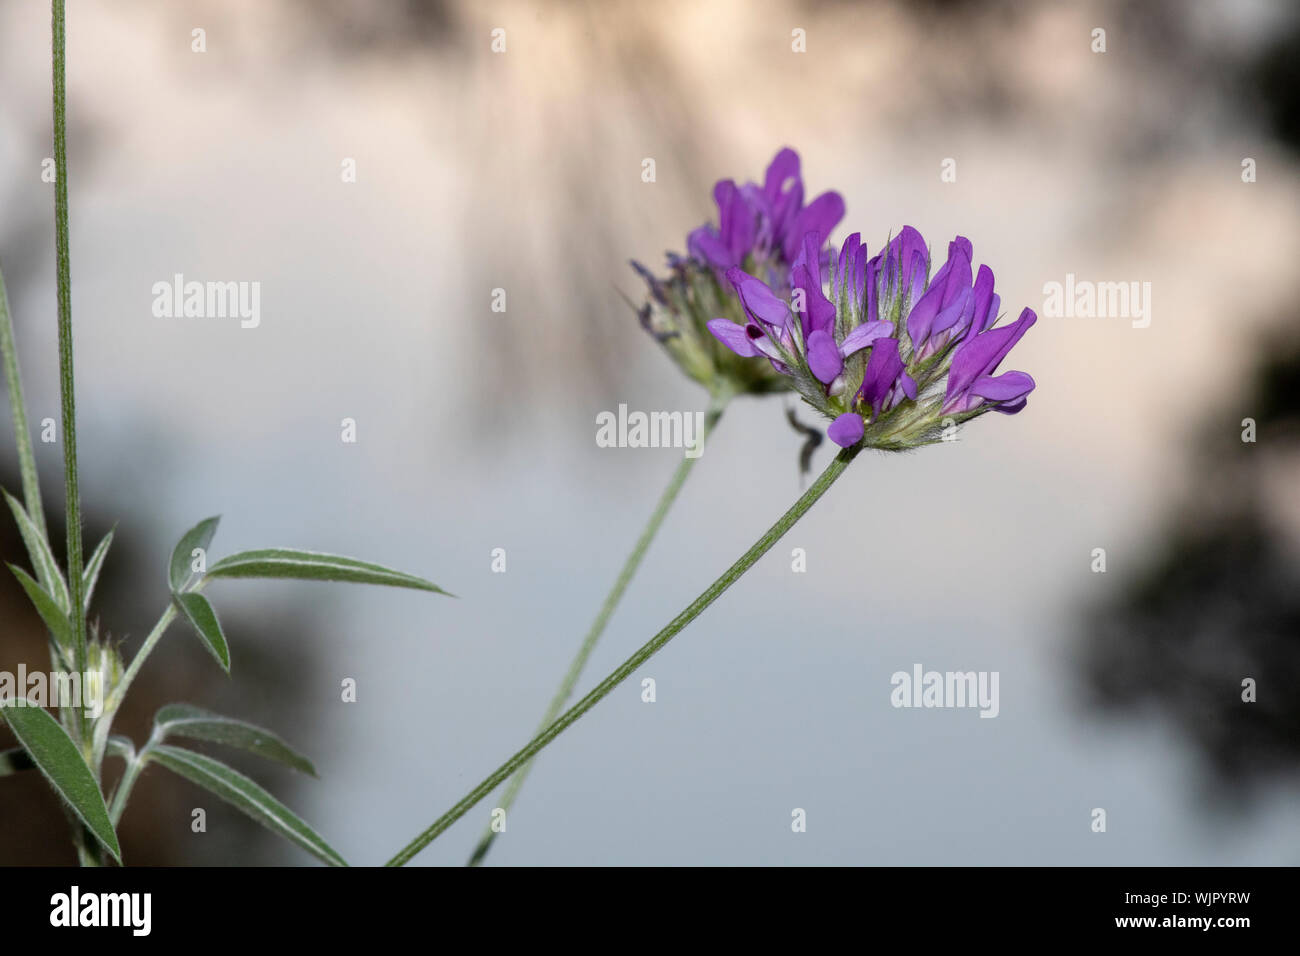 Purple color flower of arabian pea. Close-up. Blurred background. Stock Photo